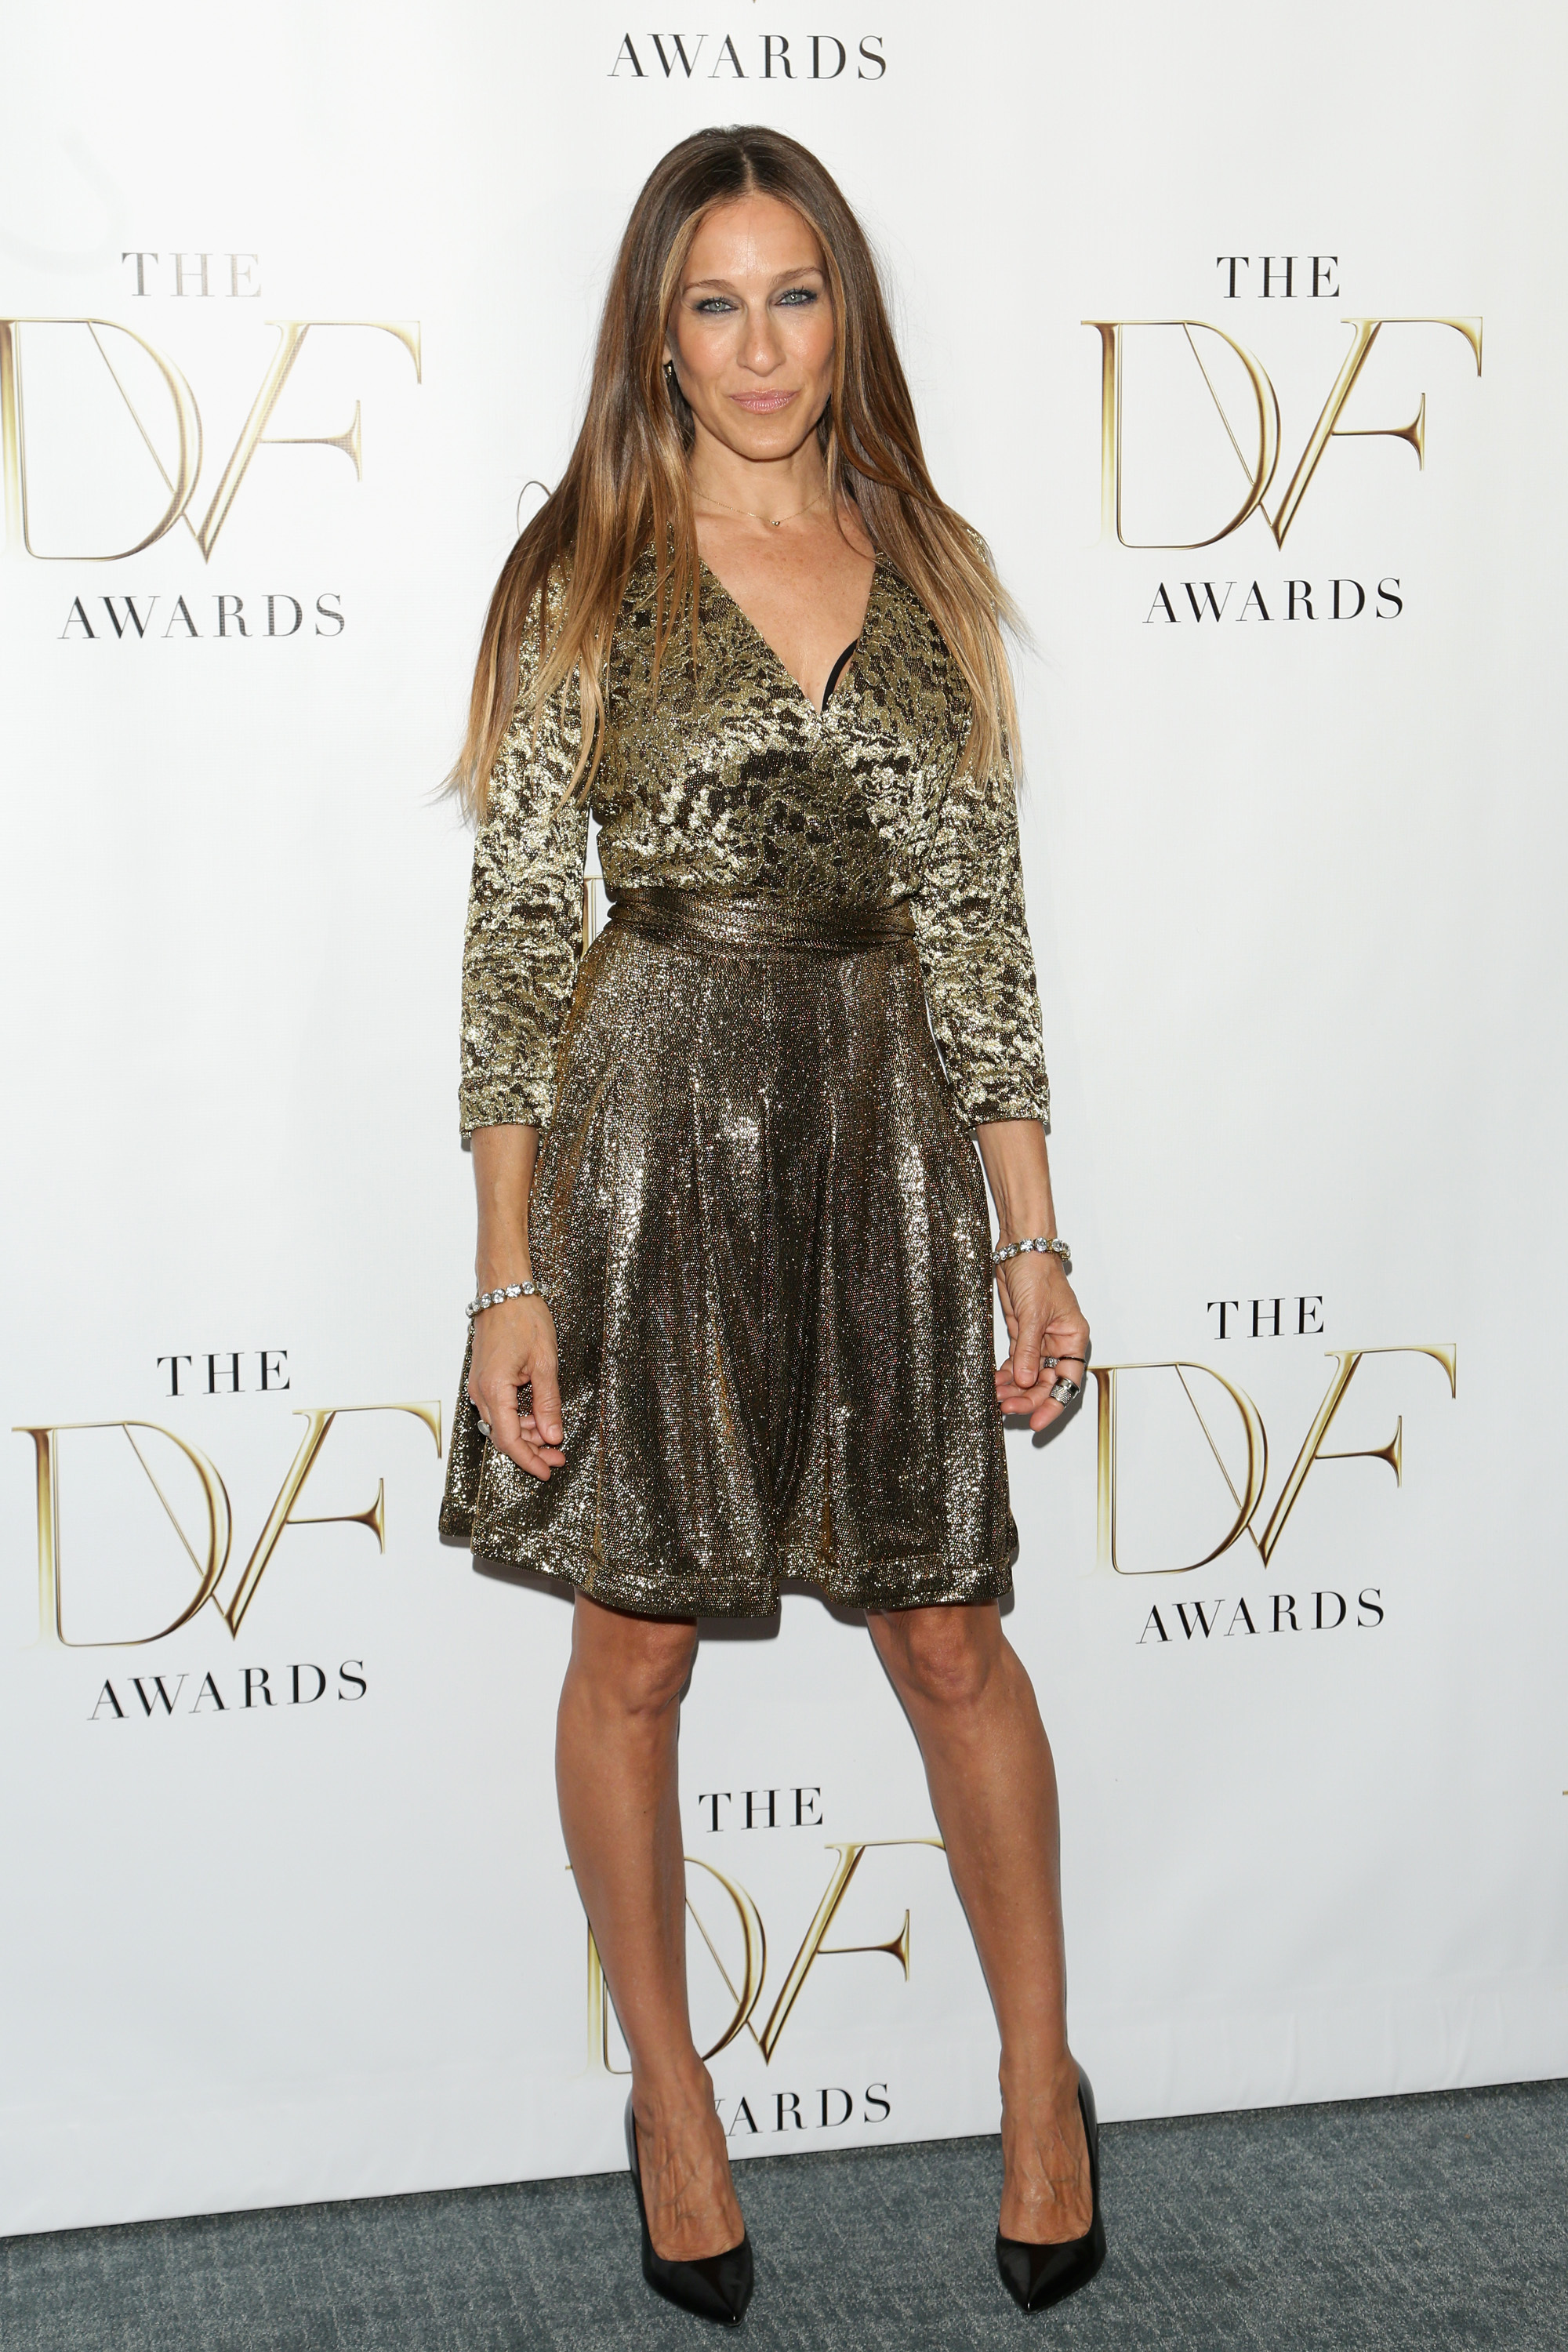 Sarah Jessica Parker attends the 2014 DVF Awards on April 4, 2014 in New York City.